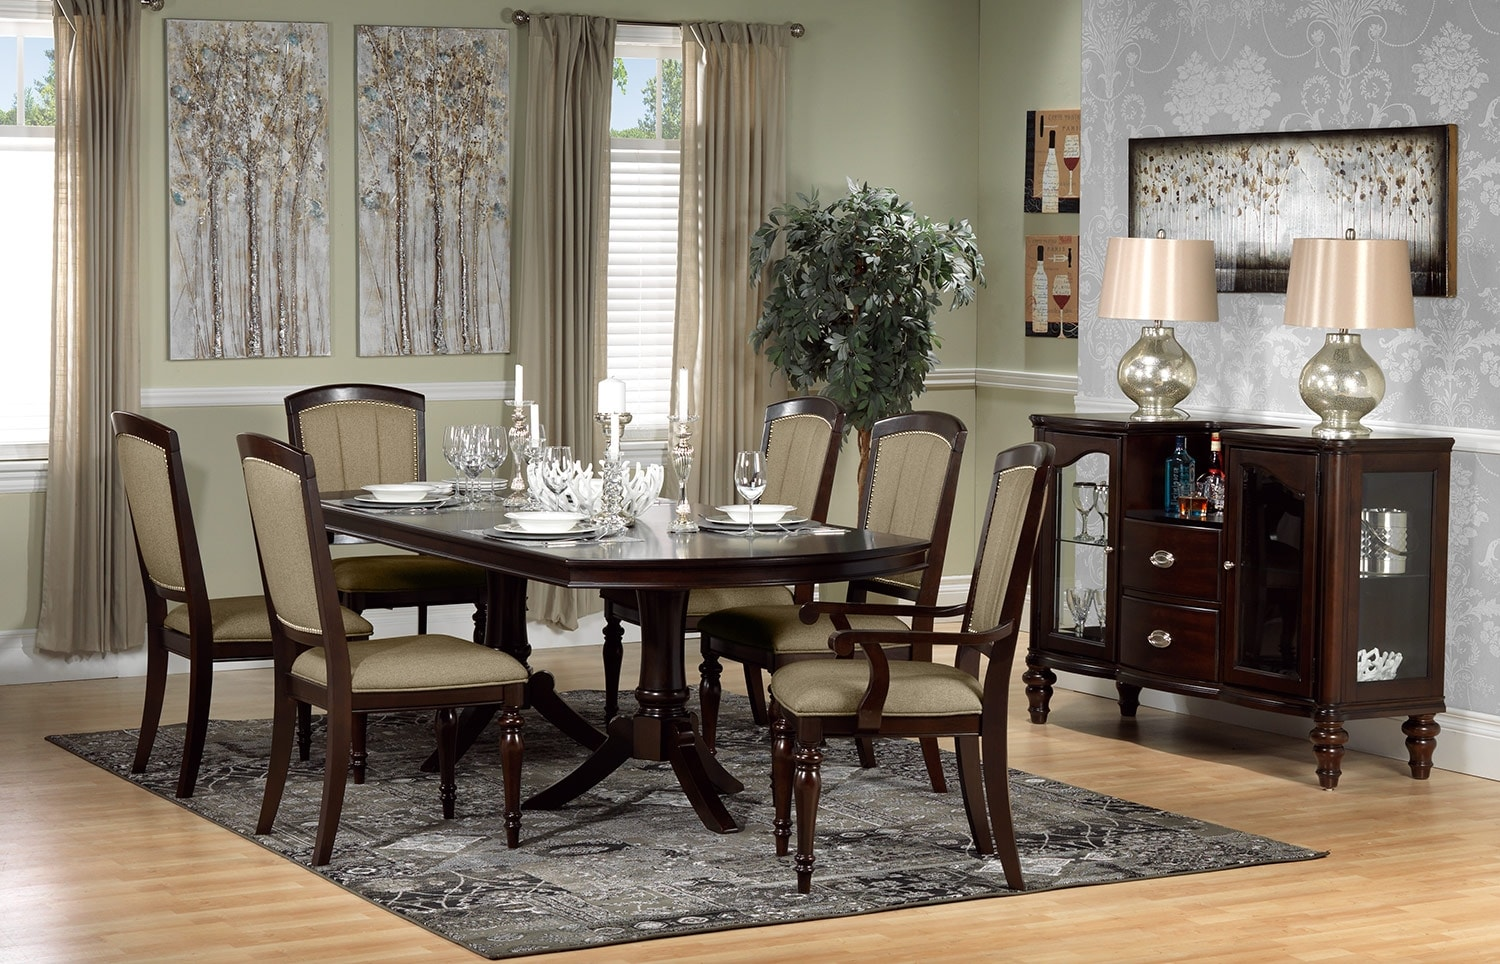 Thoreaux 7-Piece Dining Room Set - Dark Cherry